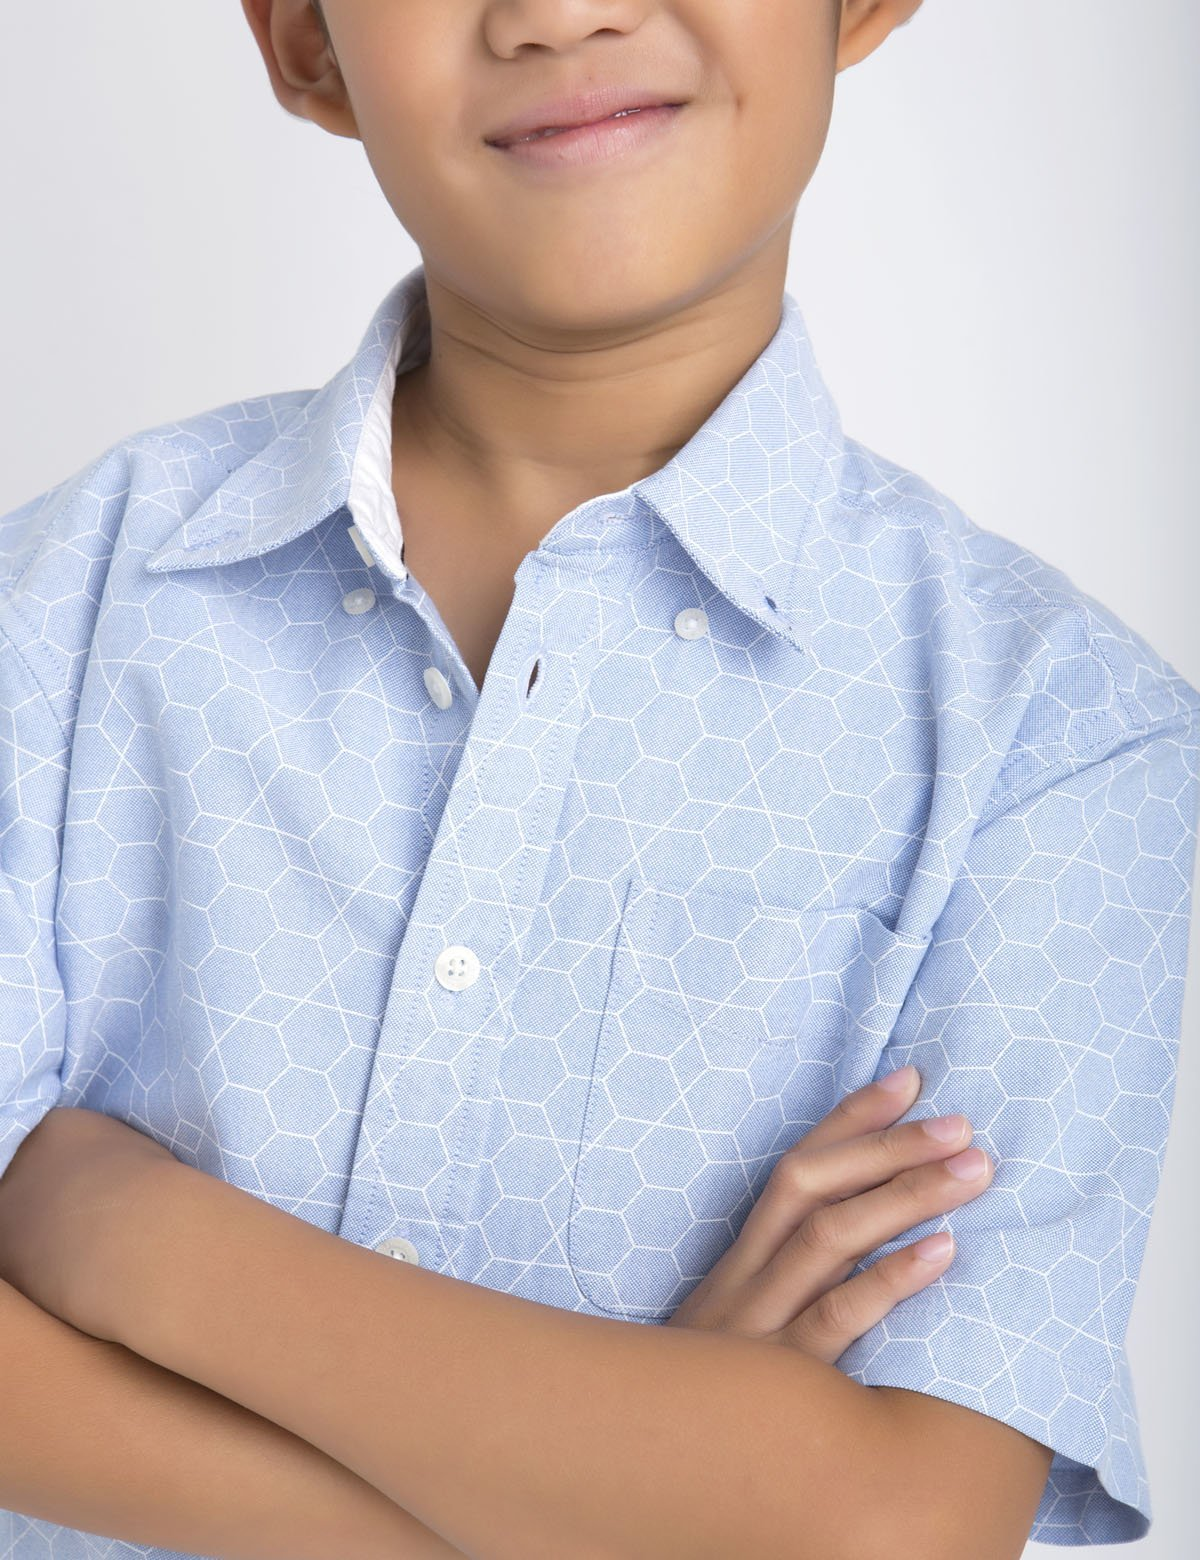 BOYS BLACK MALLET HONEYCOMB SHIRT - U.S. Polo Assn.